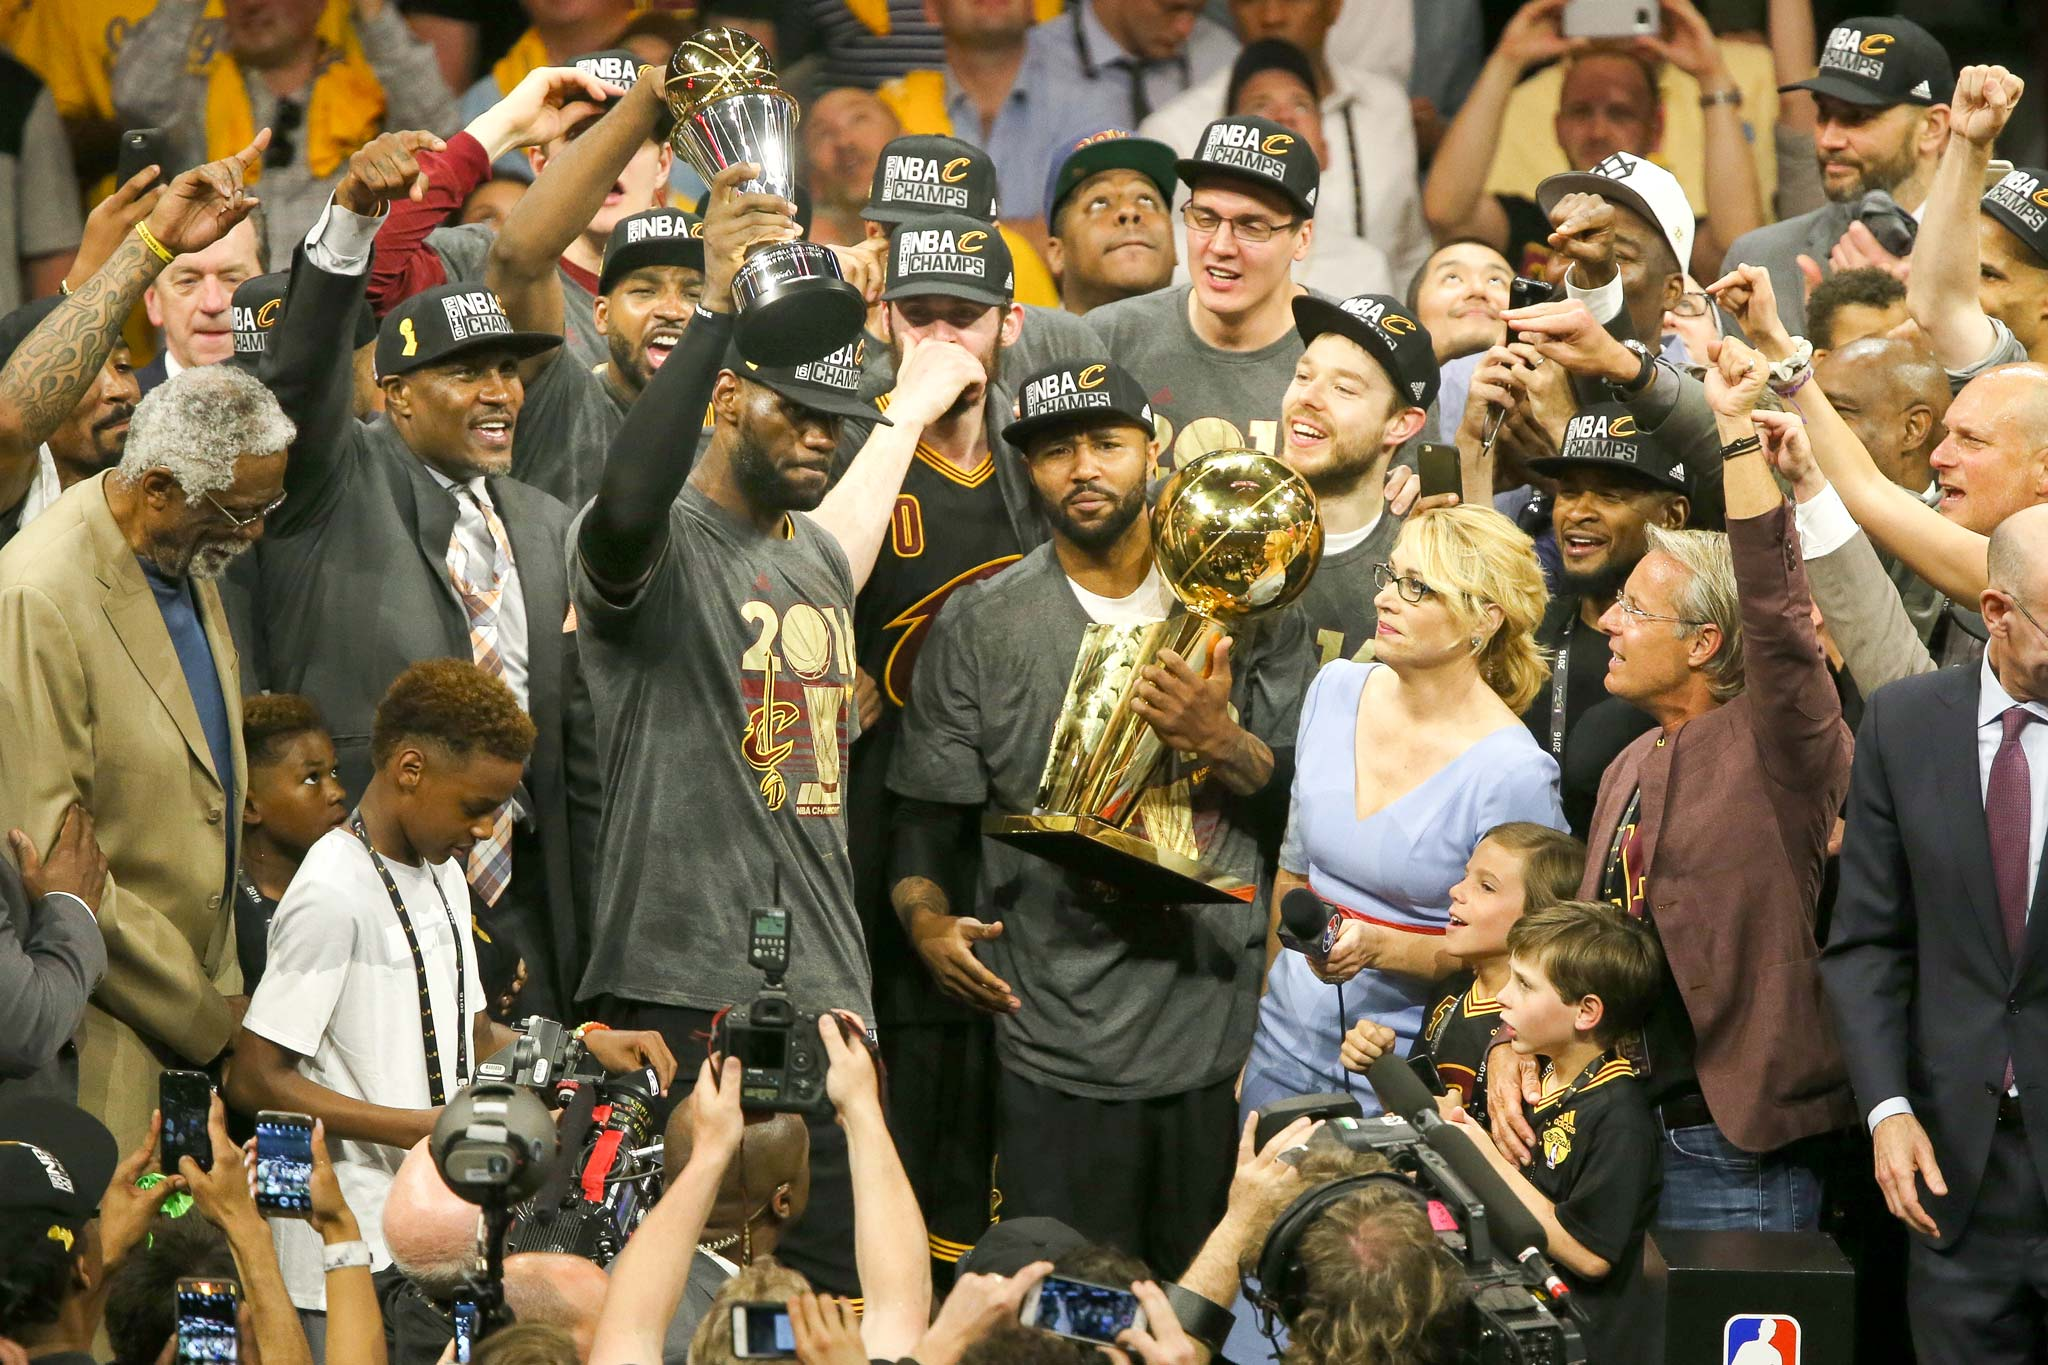 LeBron James holds the trophy for the 2016 NBA MVP in crowd of Cavaliers players, media, and fans after Game 7